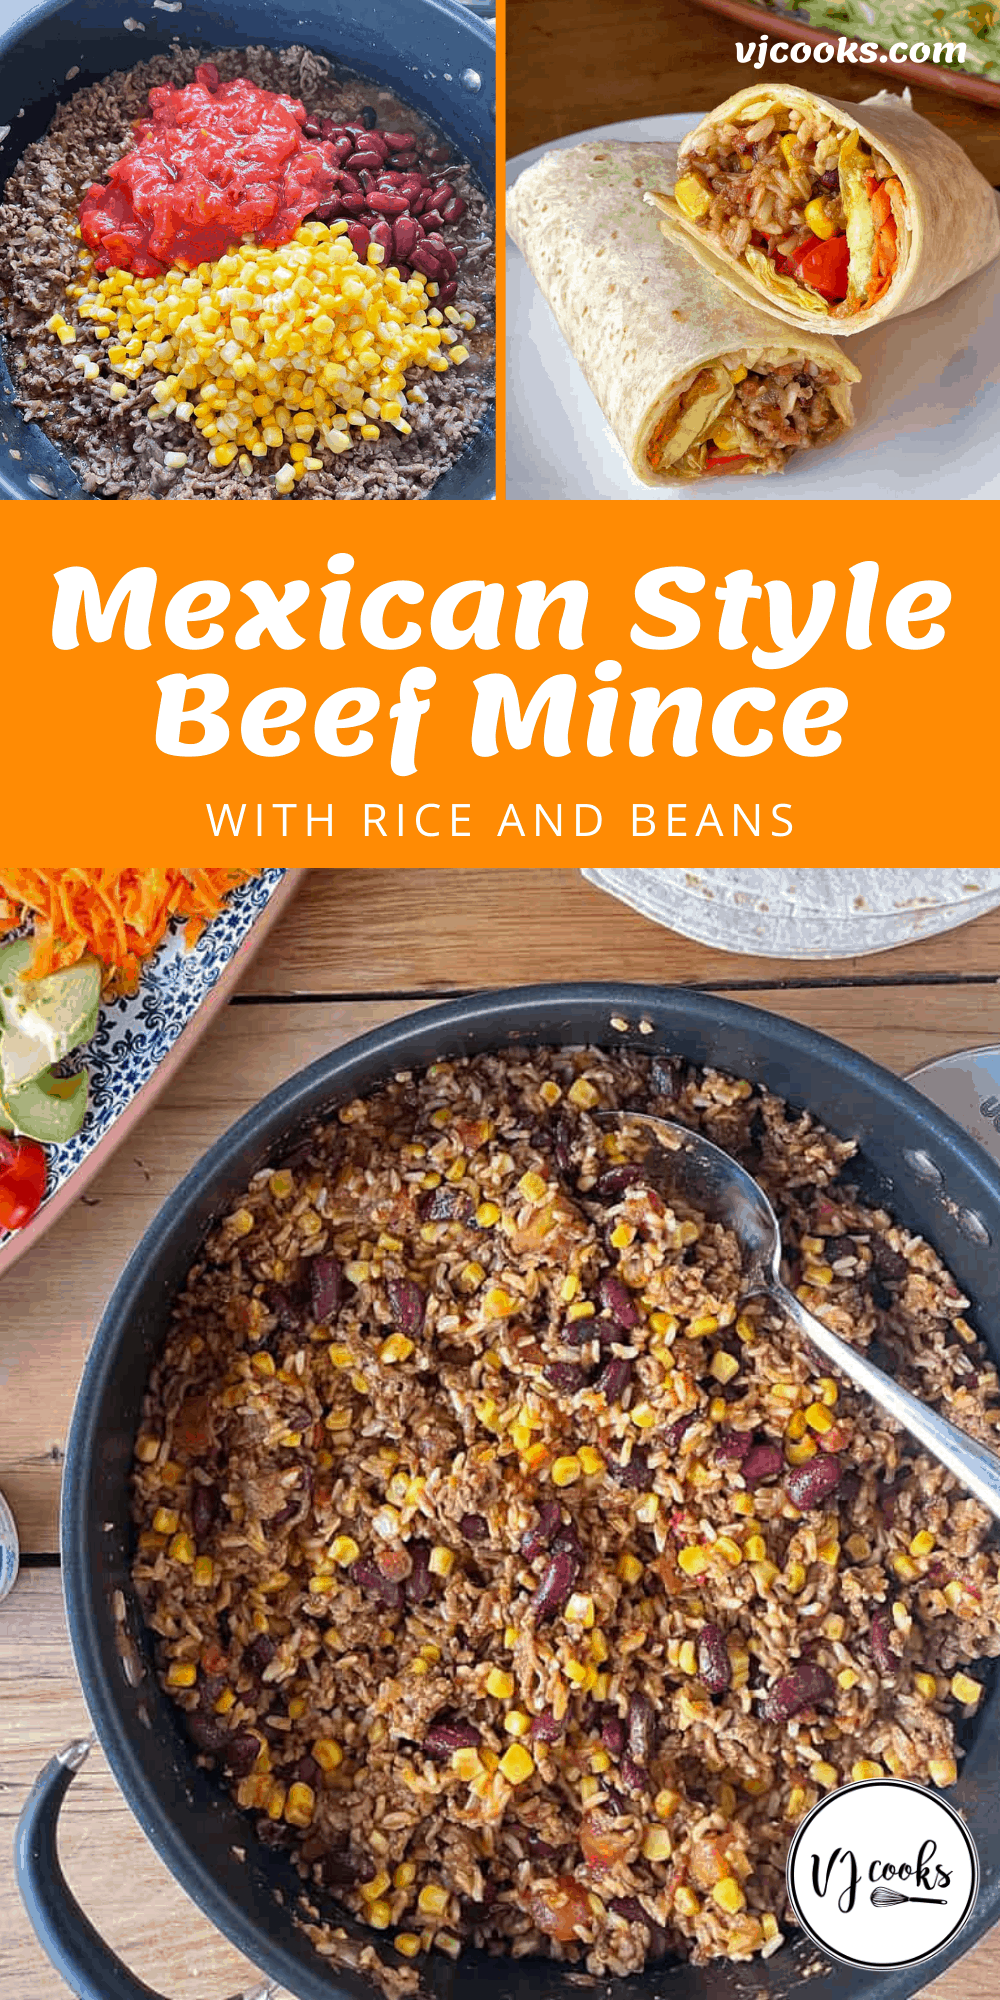 MEXICAN STYLE BEEF MINCE